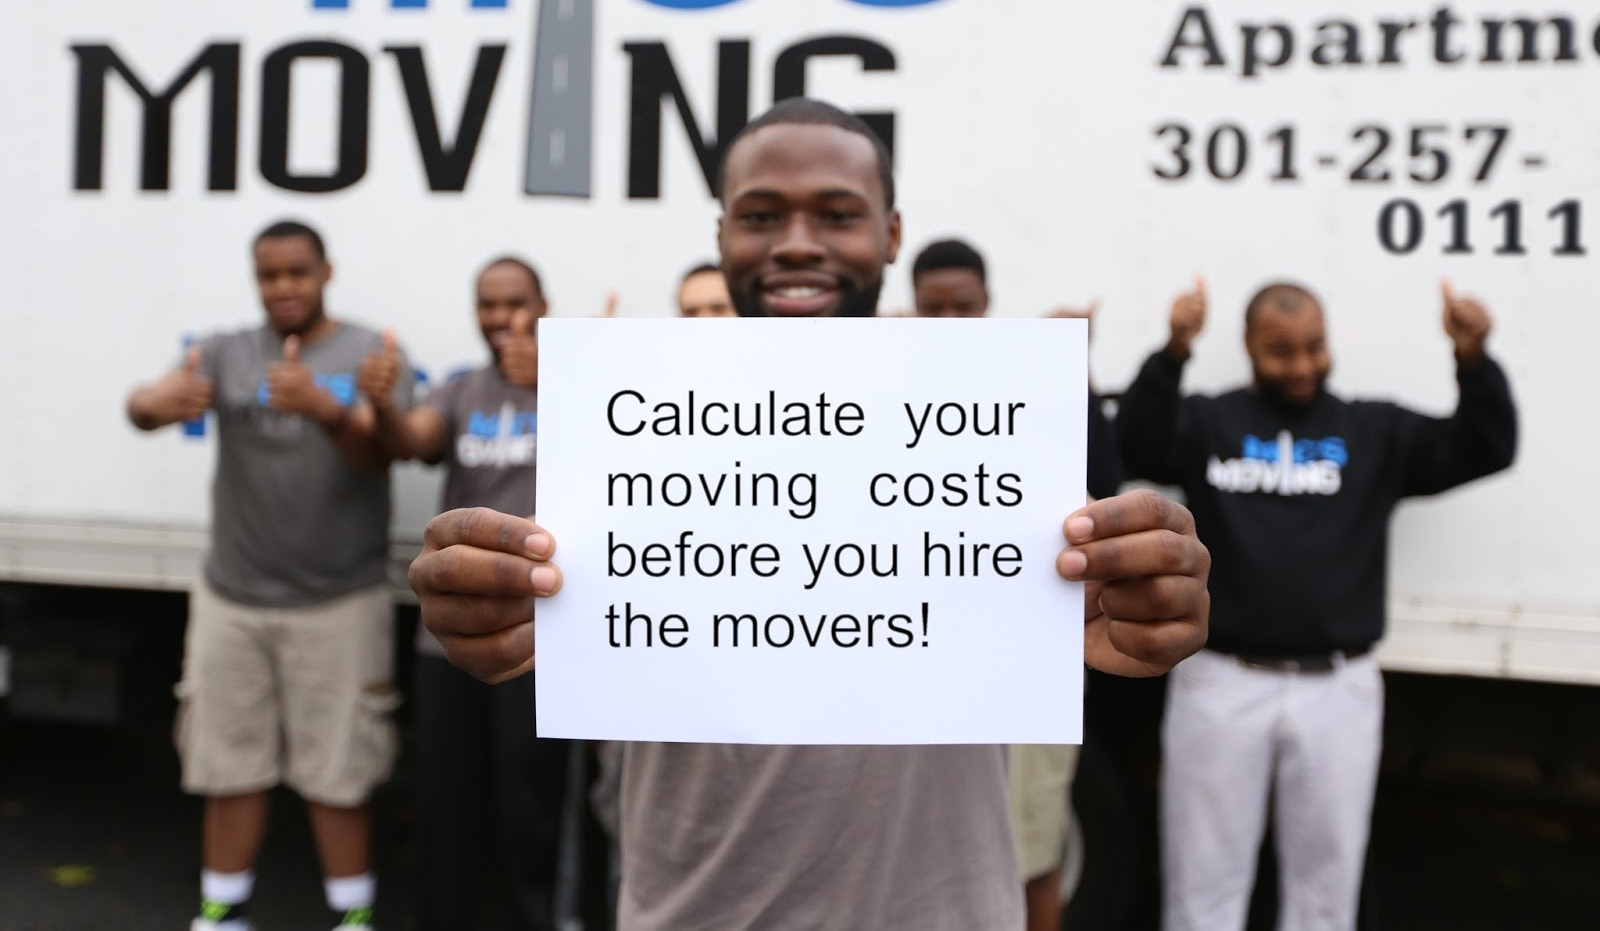 Find out your moving cost before you move